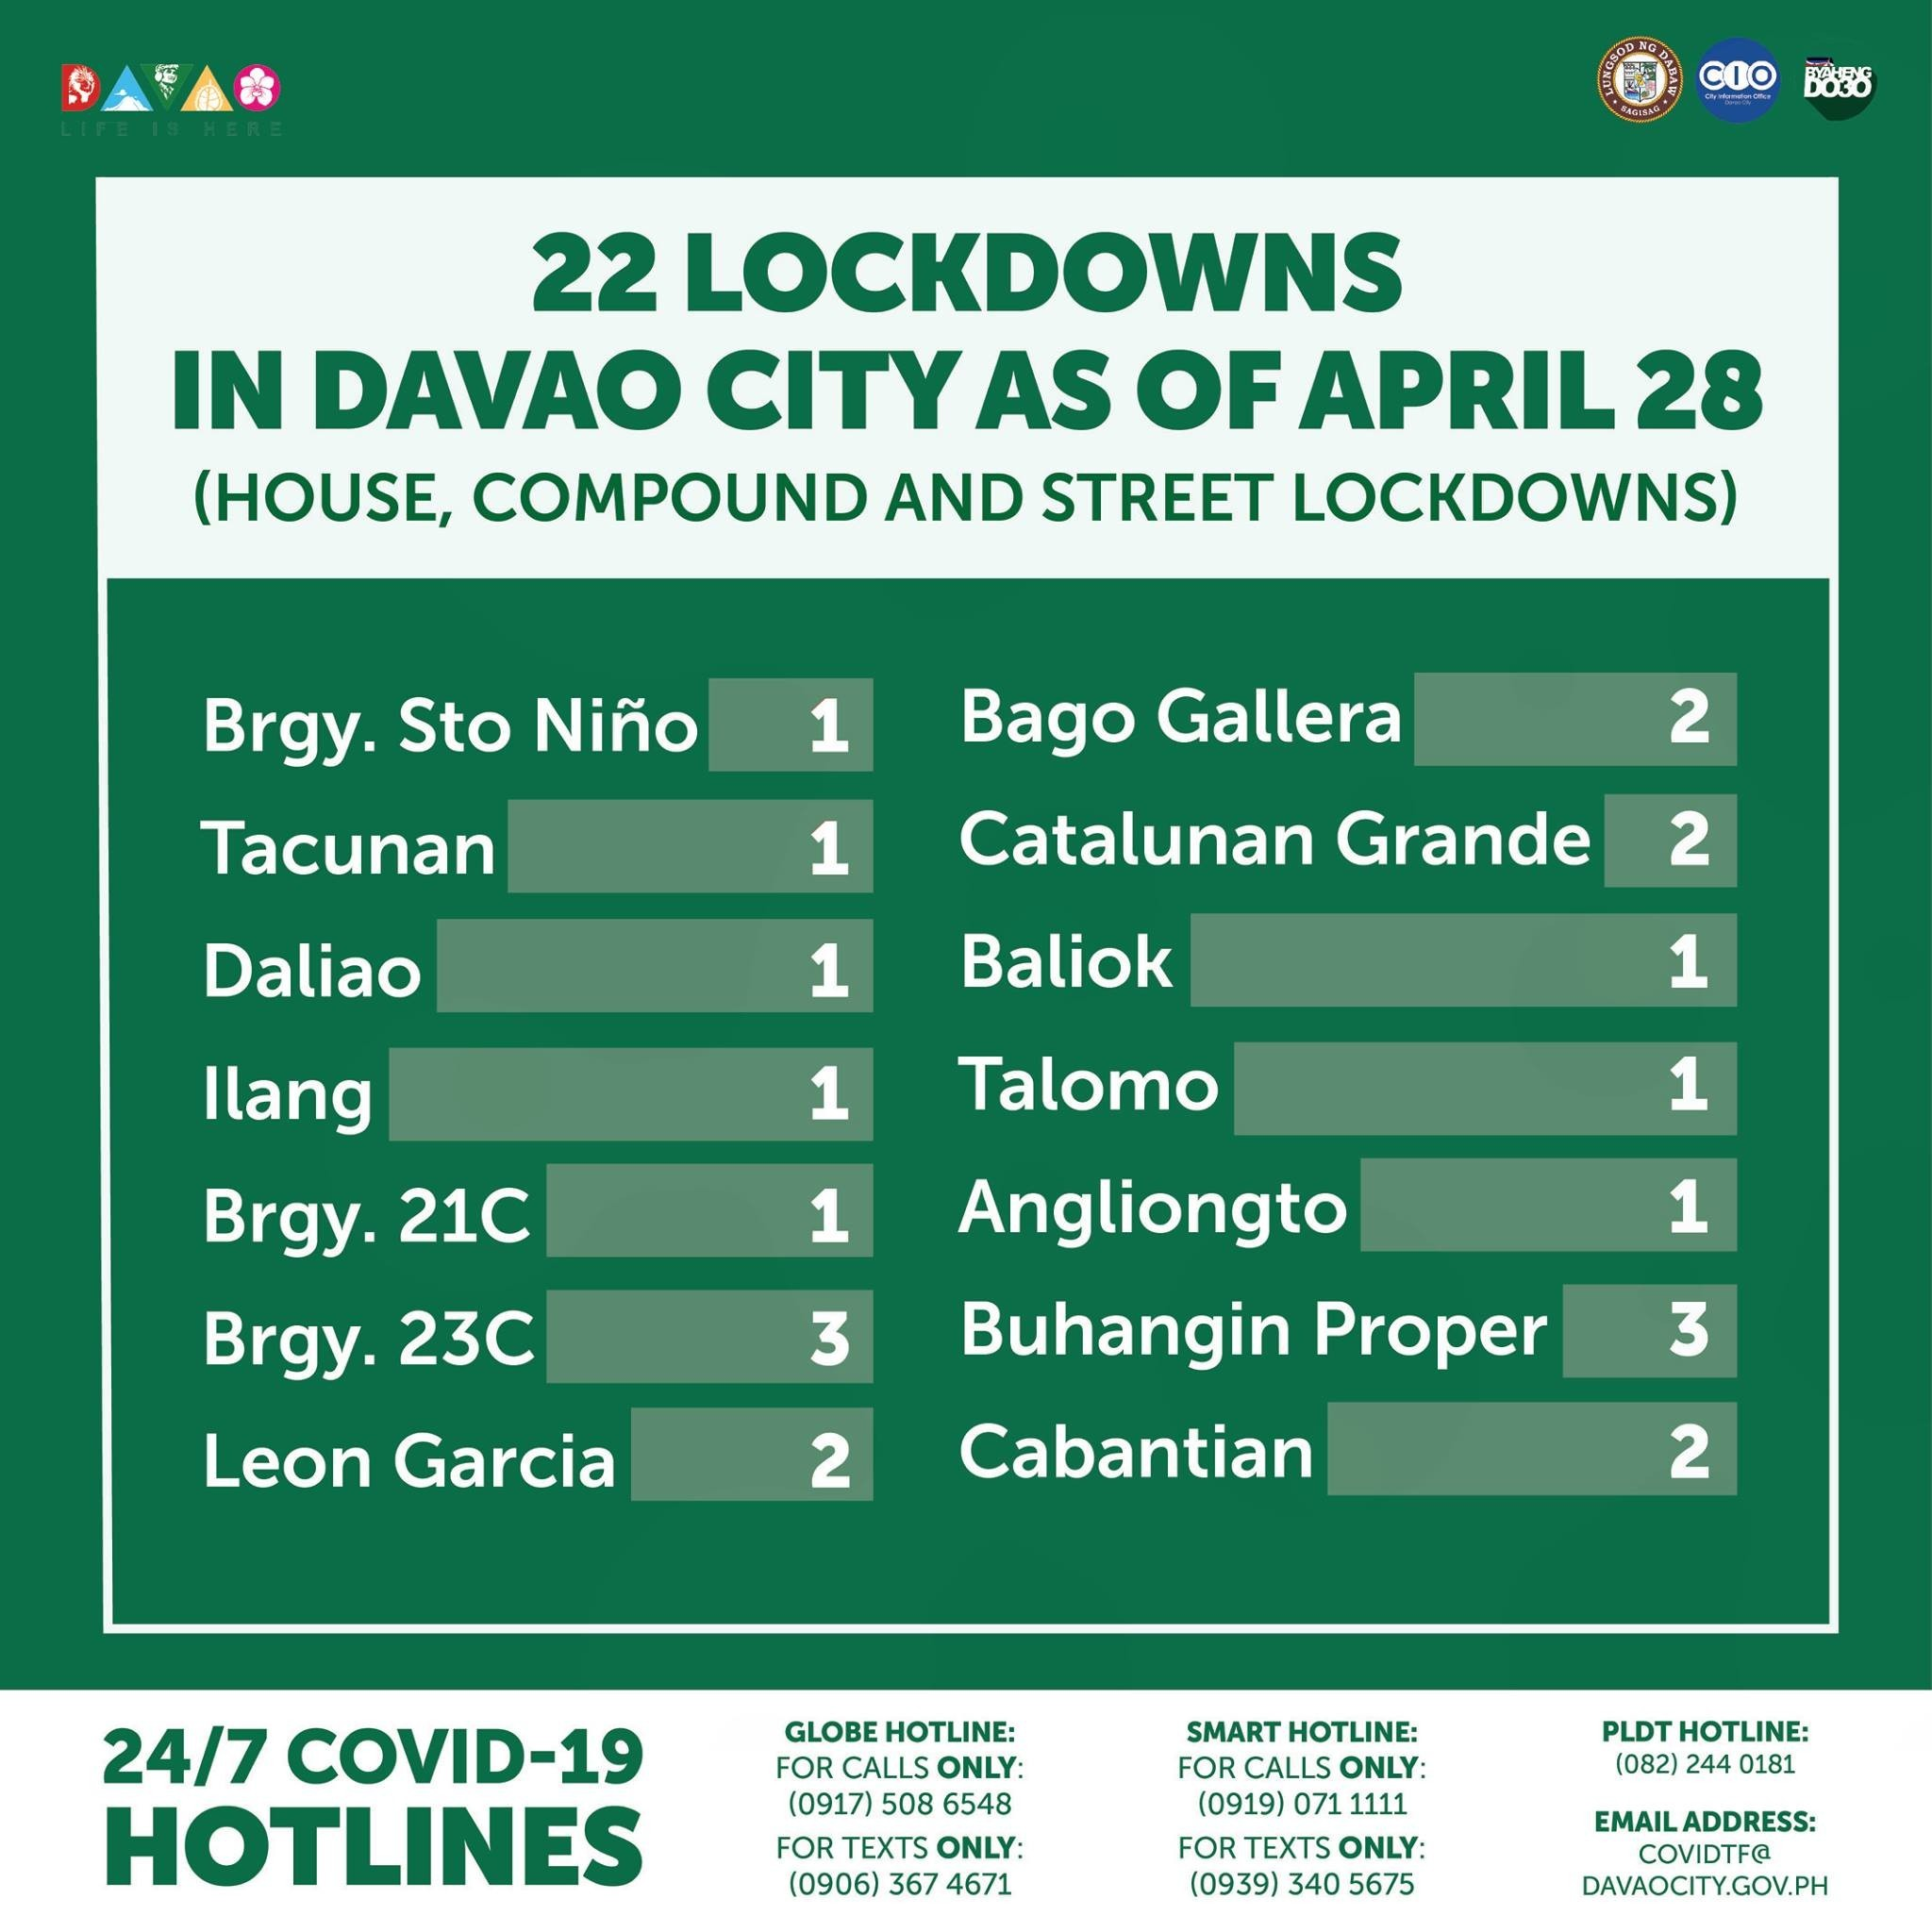 22 LOCKDOWNS IN DAVAO CITY AS OF APRIL 28 (House, compound and street lockdowns)